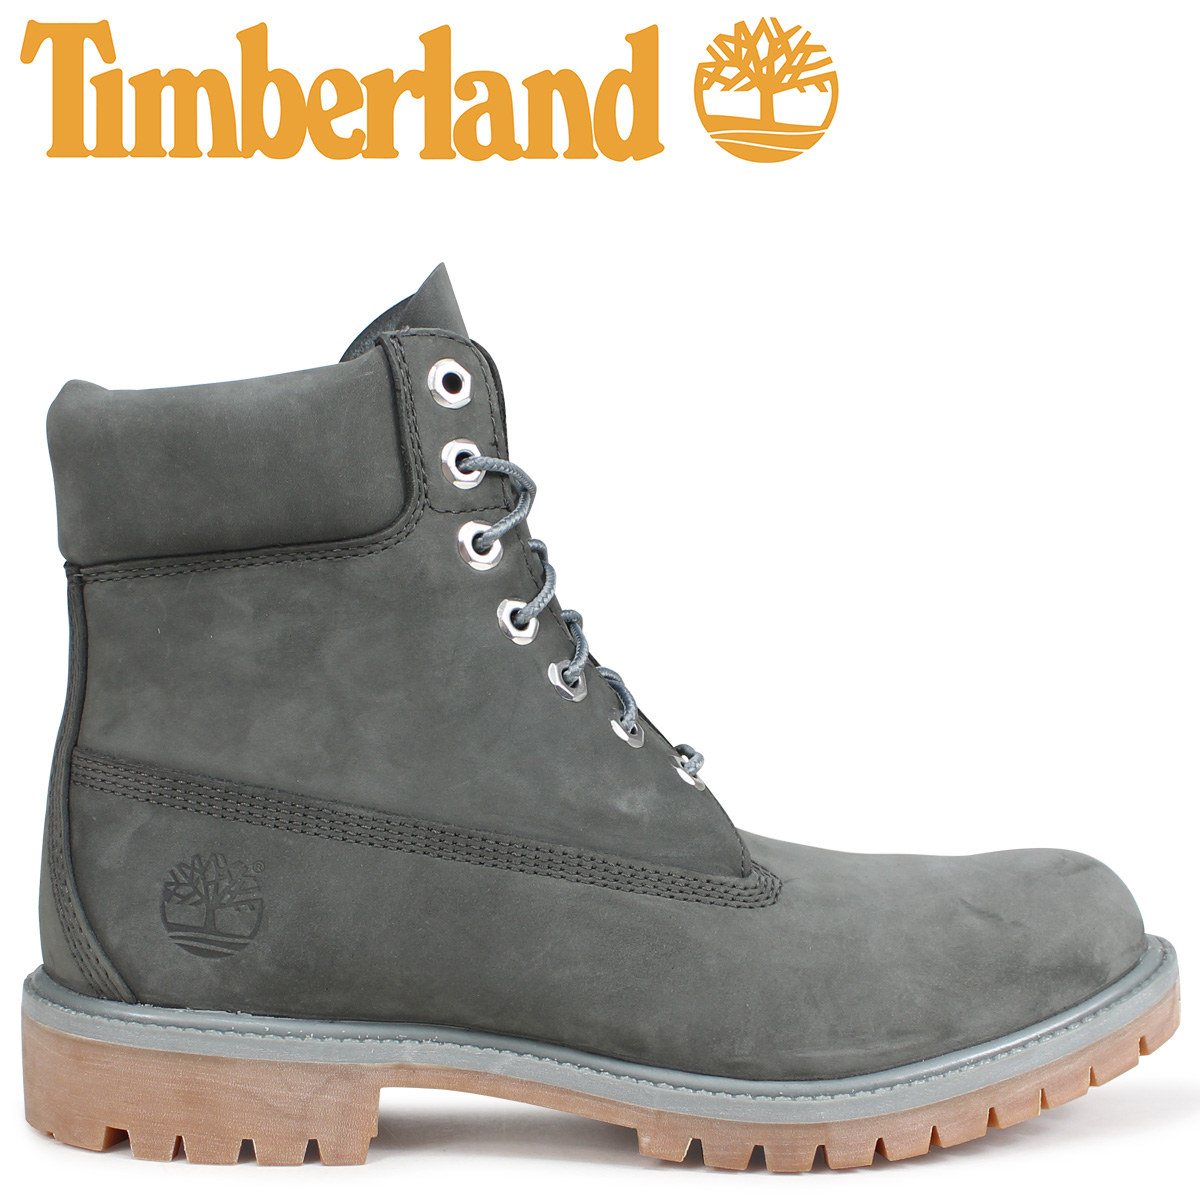 6386aa54e0b 6 inches of Timberland boots men Timberland 6-INCH PREMIUM BOOTS A1UFH W  Wise dark gray